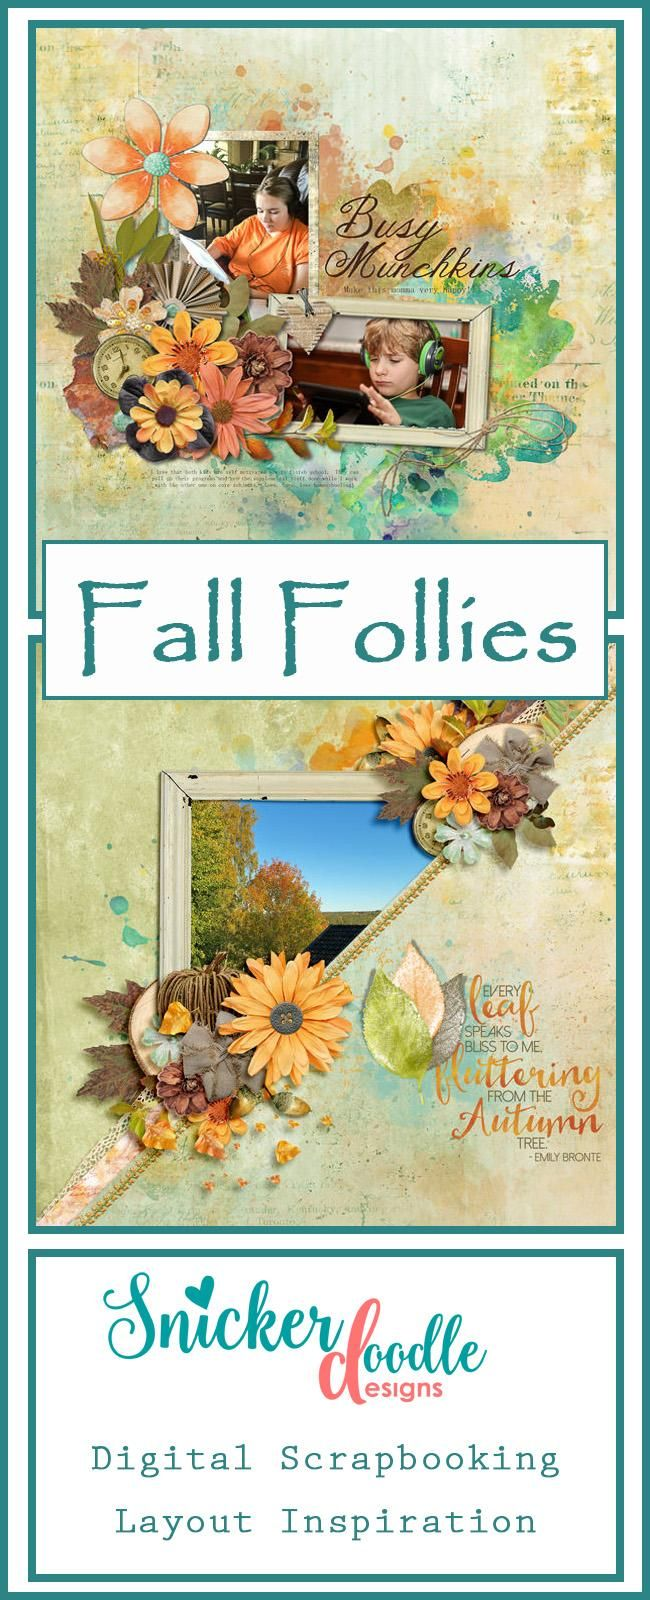 "Capture the whimsey of the season, while adding rustic charm to your digital scrapbook pages, when you use ""Fall Follies"" to scrap your memories. #SnickerdoodleDesigns  #digitalscrapbooking #FallFollies  #TheDigiChick http://www.thedigichick.com/shop/search.php?mode=search&page=1"